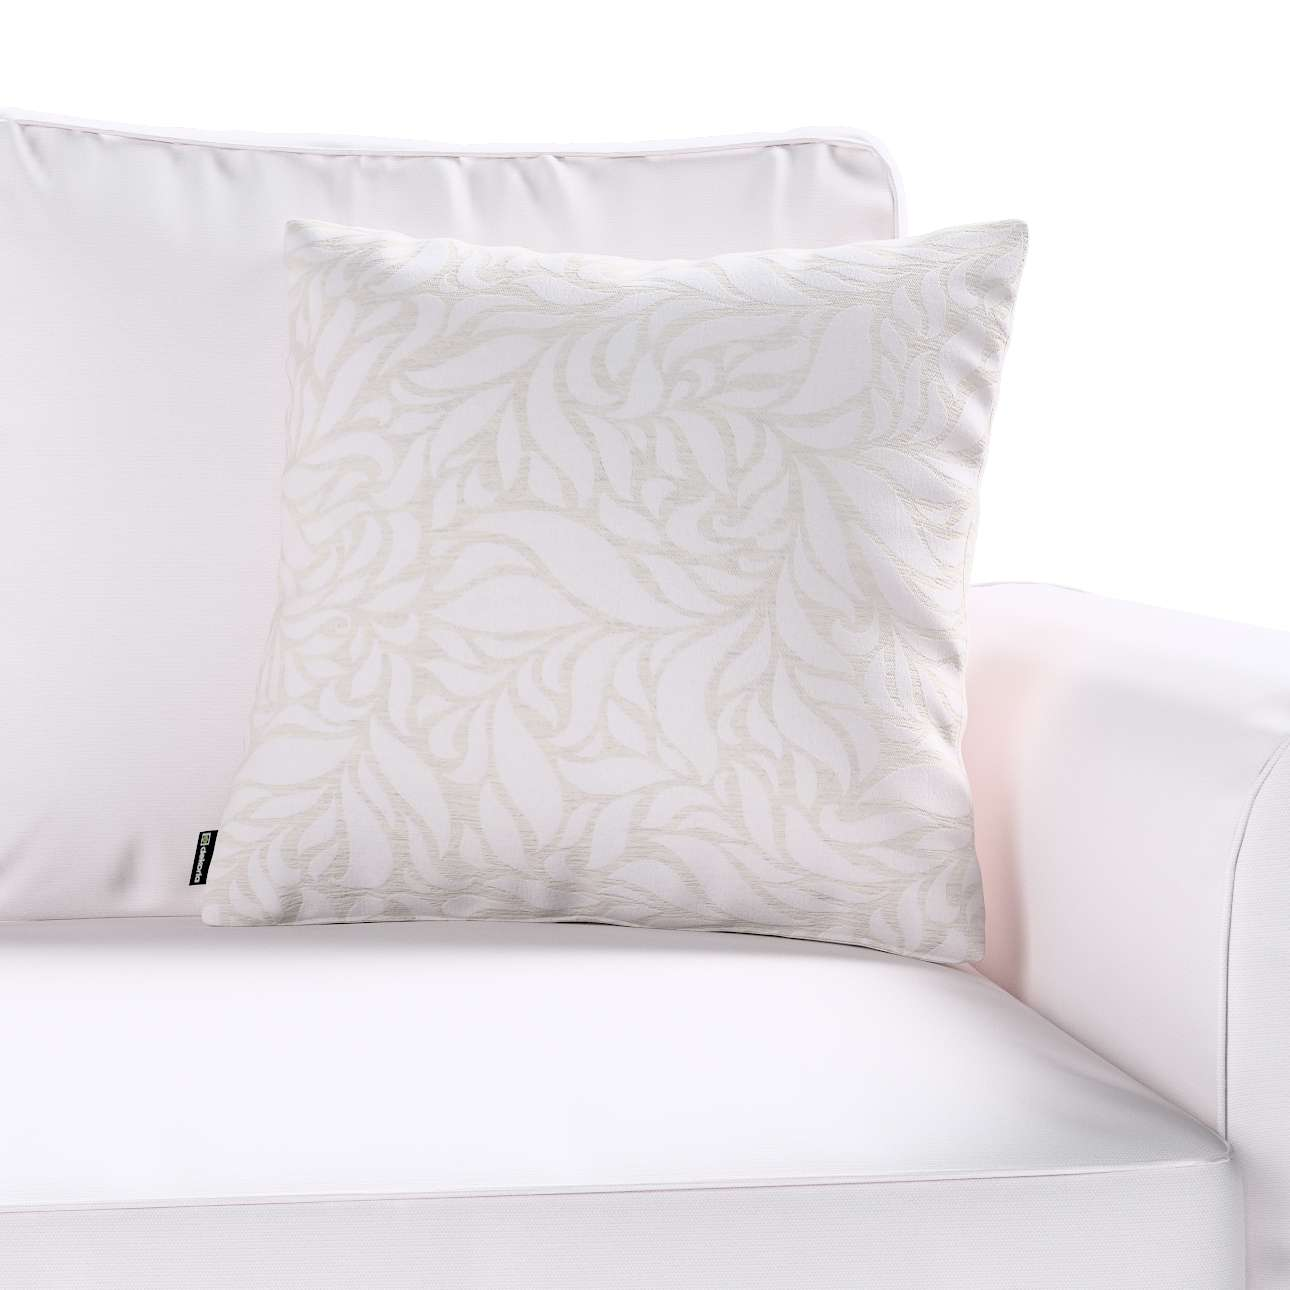 Kinga cushion cover in collection Venice, fabric: 140-50